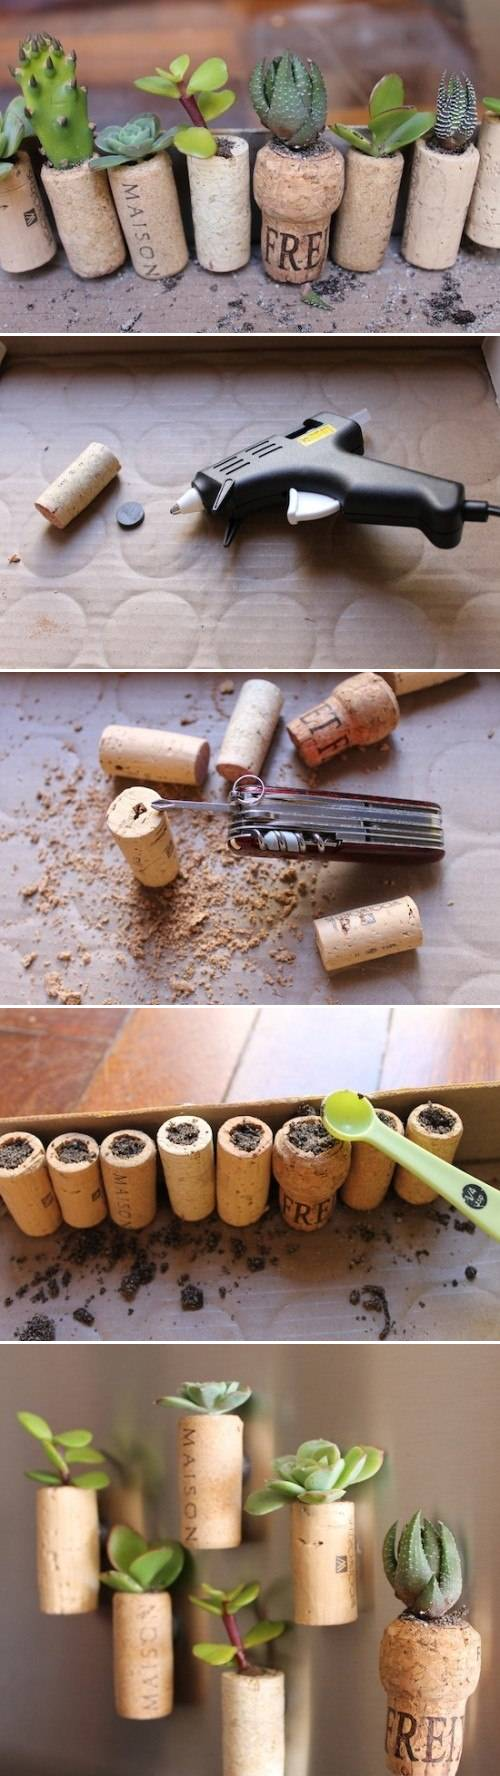 DIY-Wine-Cork-Garden.jpg